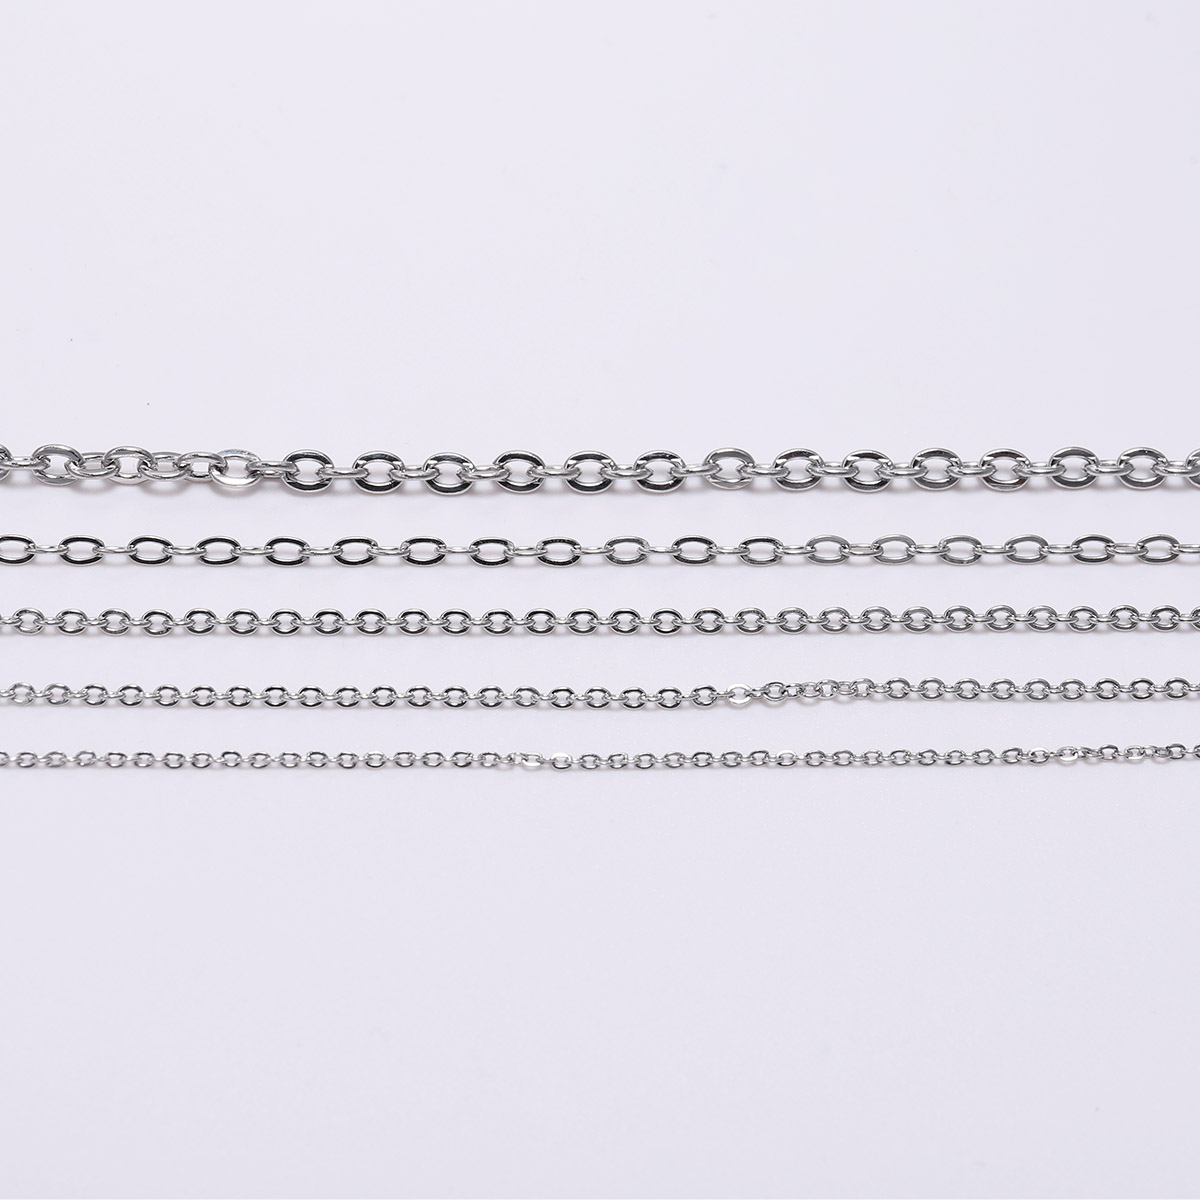 5M/Lot 1.2 1.5 2.0 2.4 3.0mm Stainless Steel Bulk Fine Necklace Chain DIY Jewelry Making Supplies Chains Findings Accessories